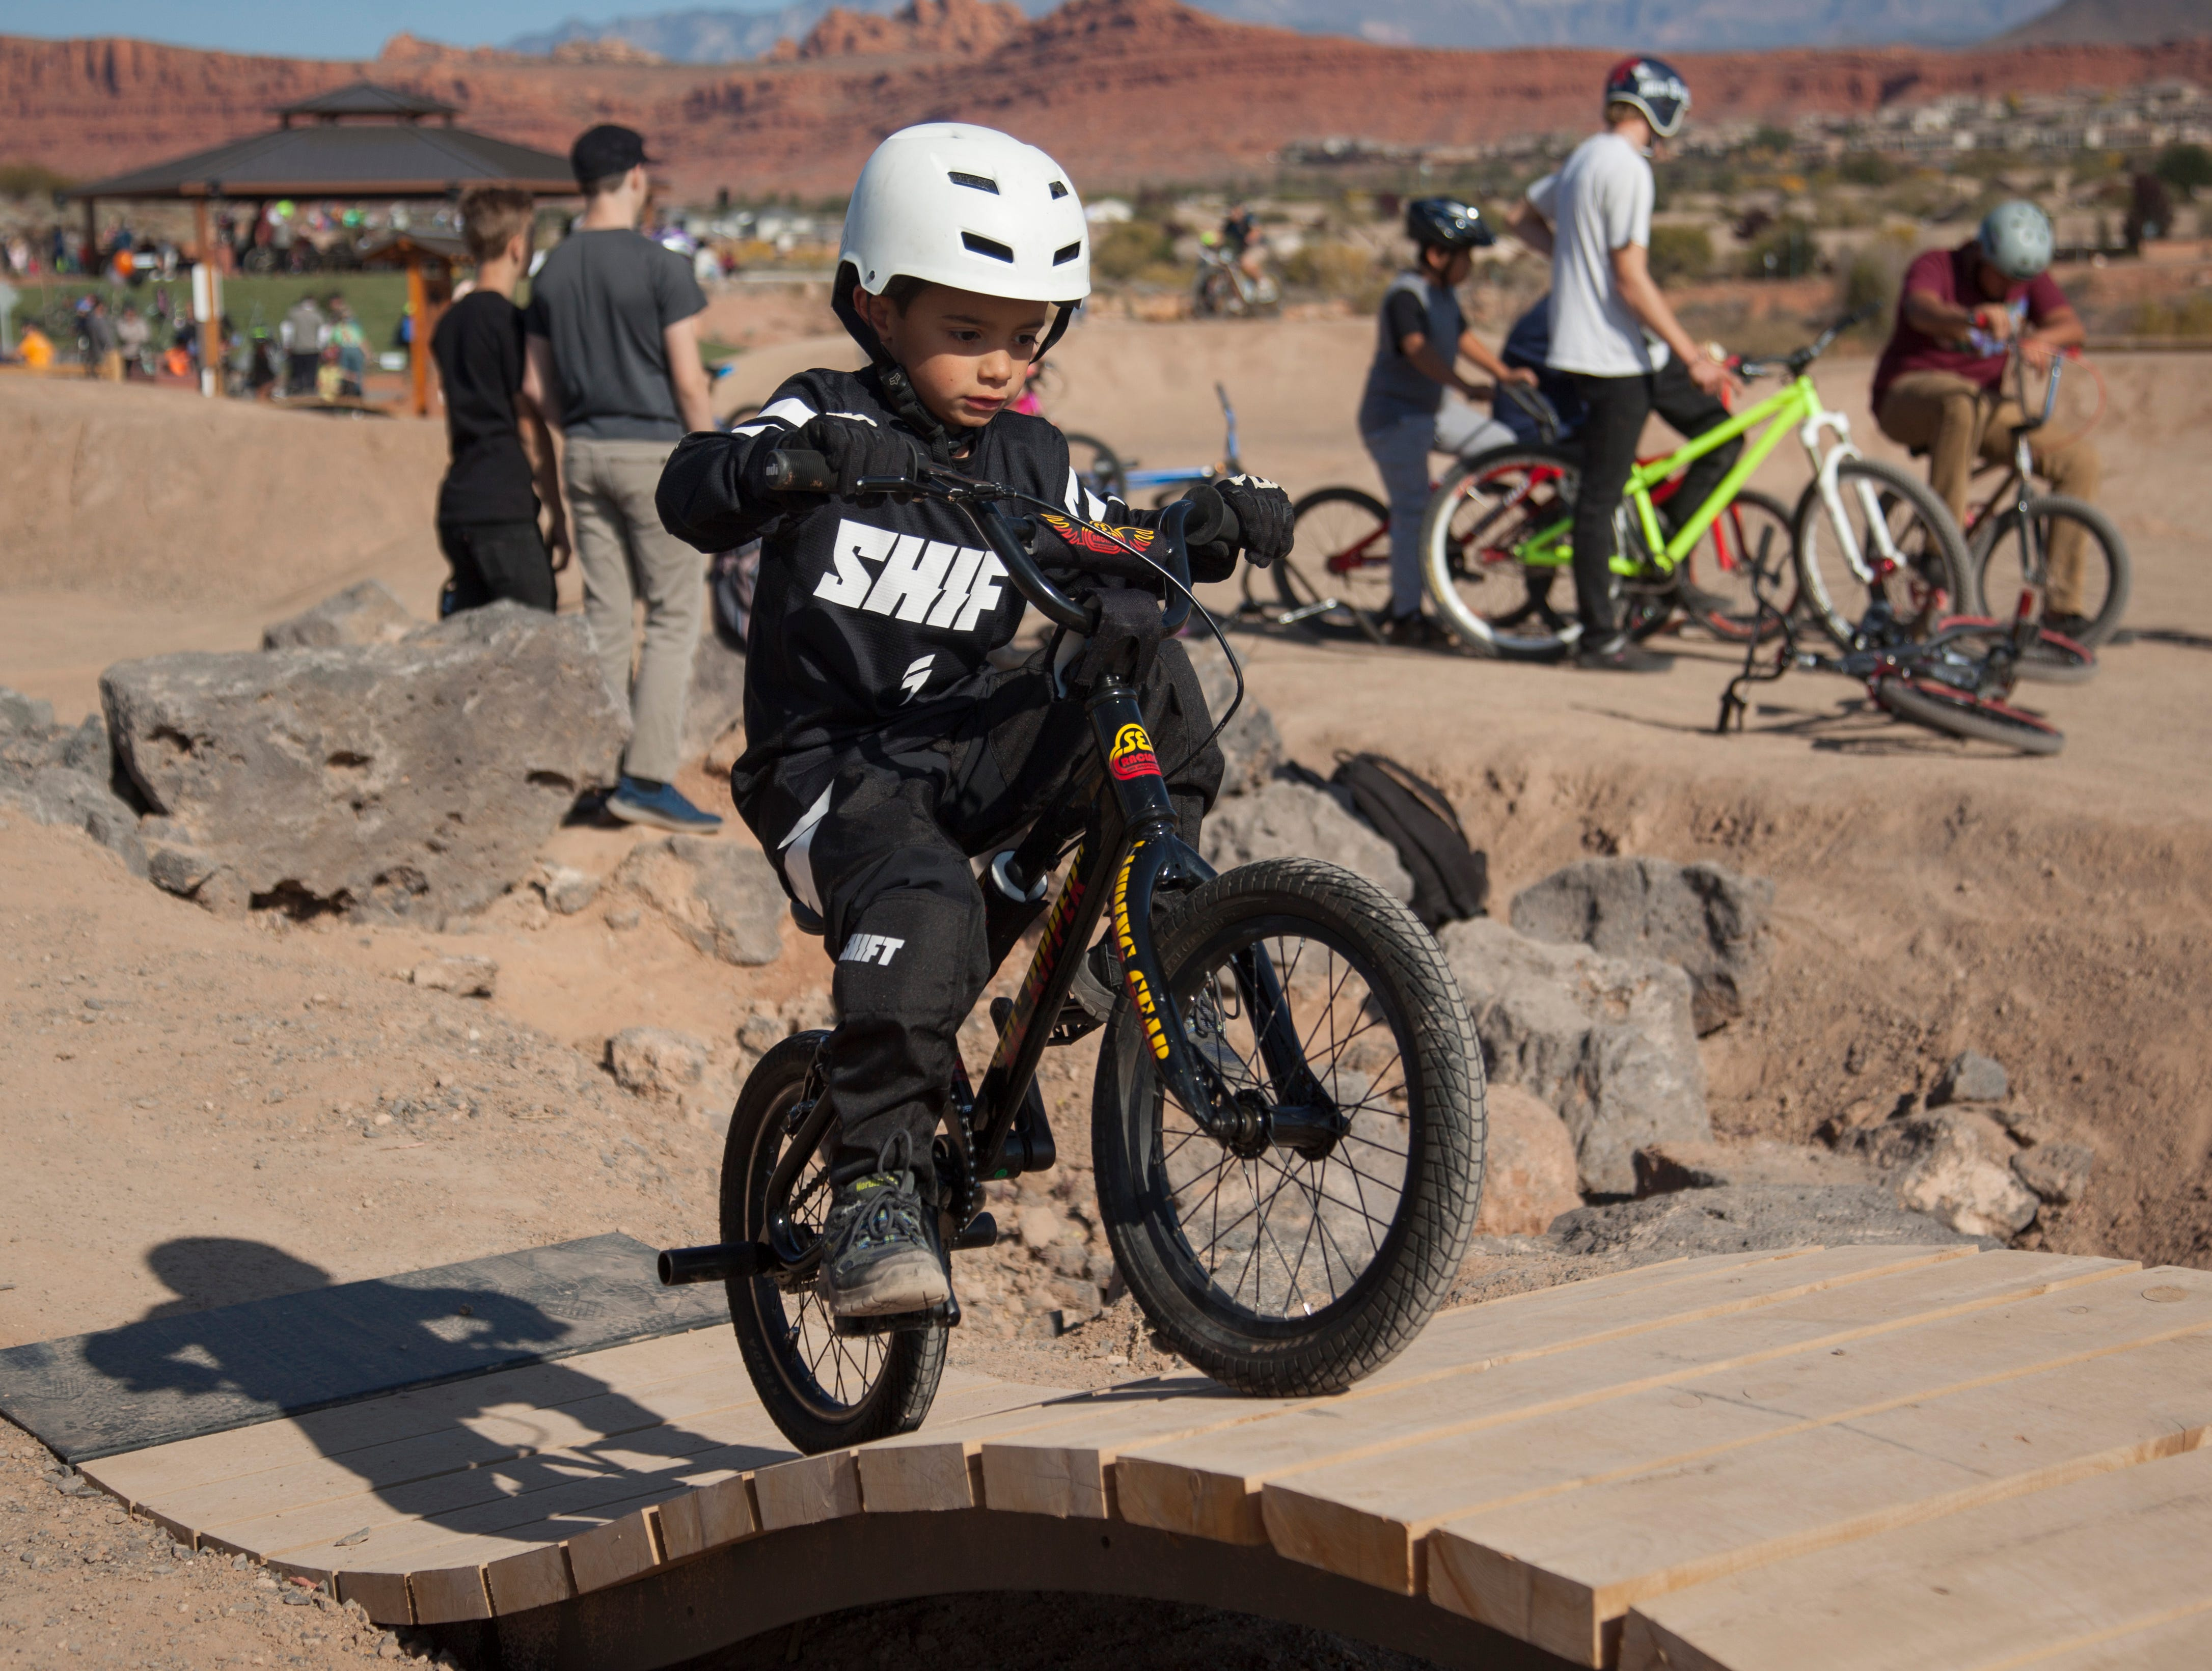 Snake Hollow Bike Park in St. George is designed to help cyclists develop skills in a safe environment.